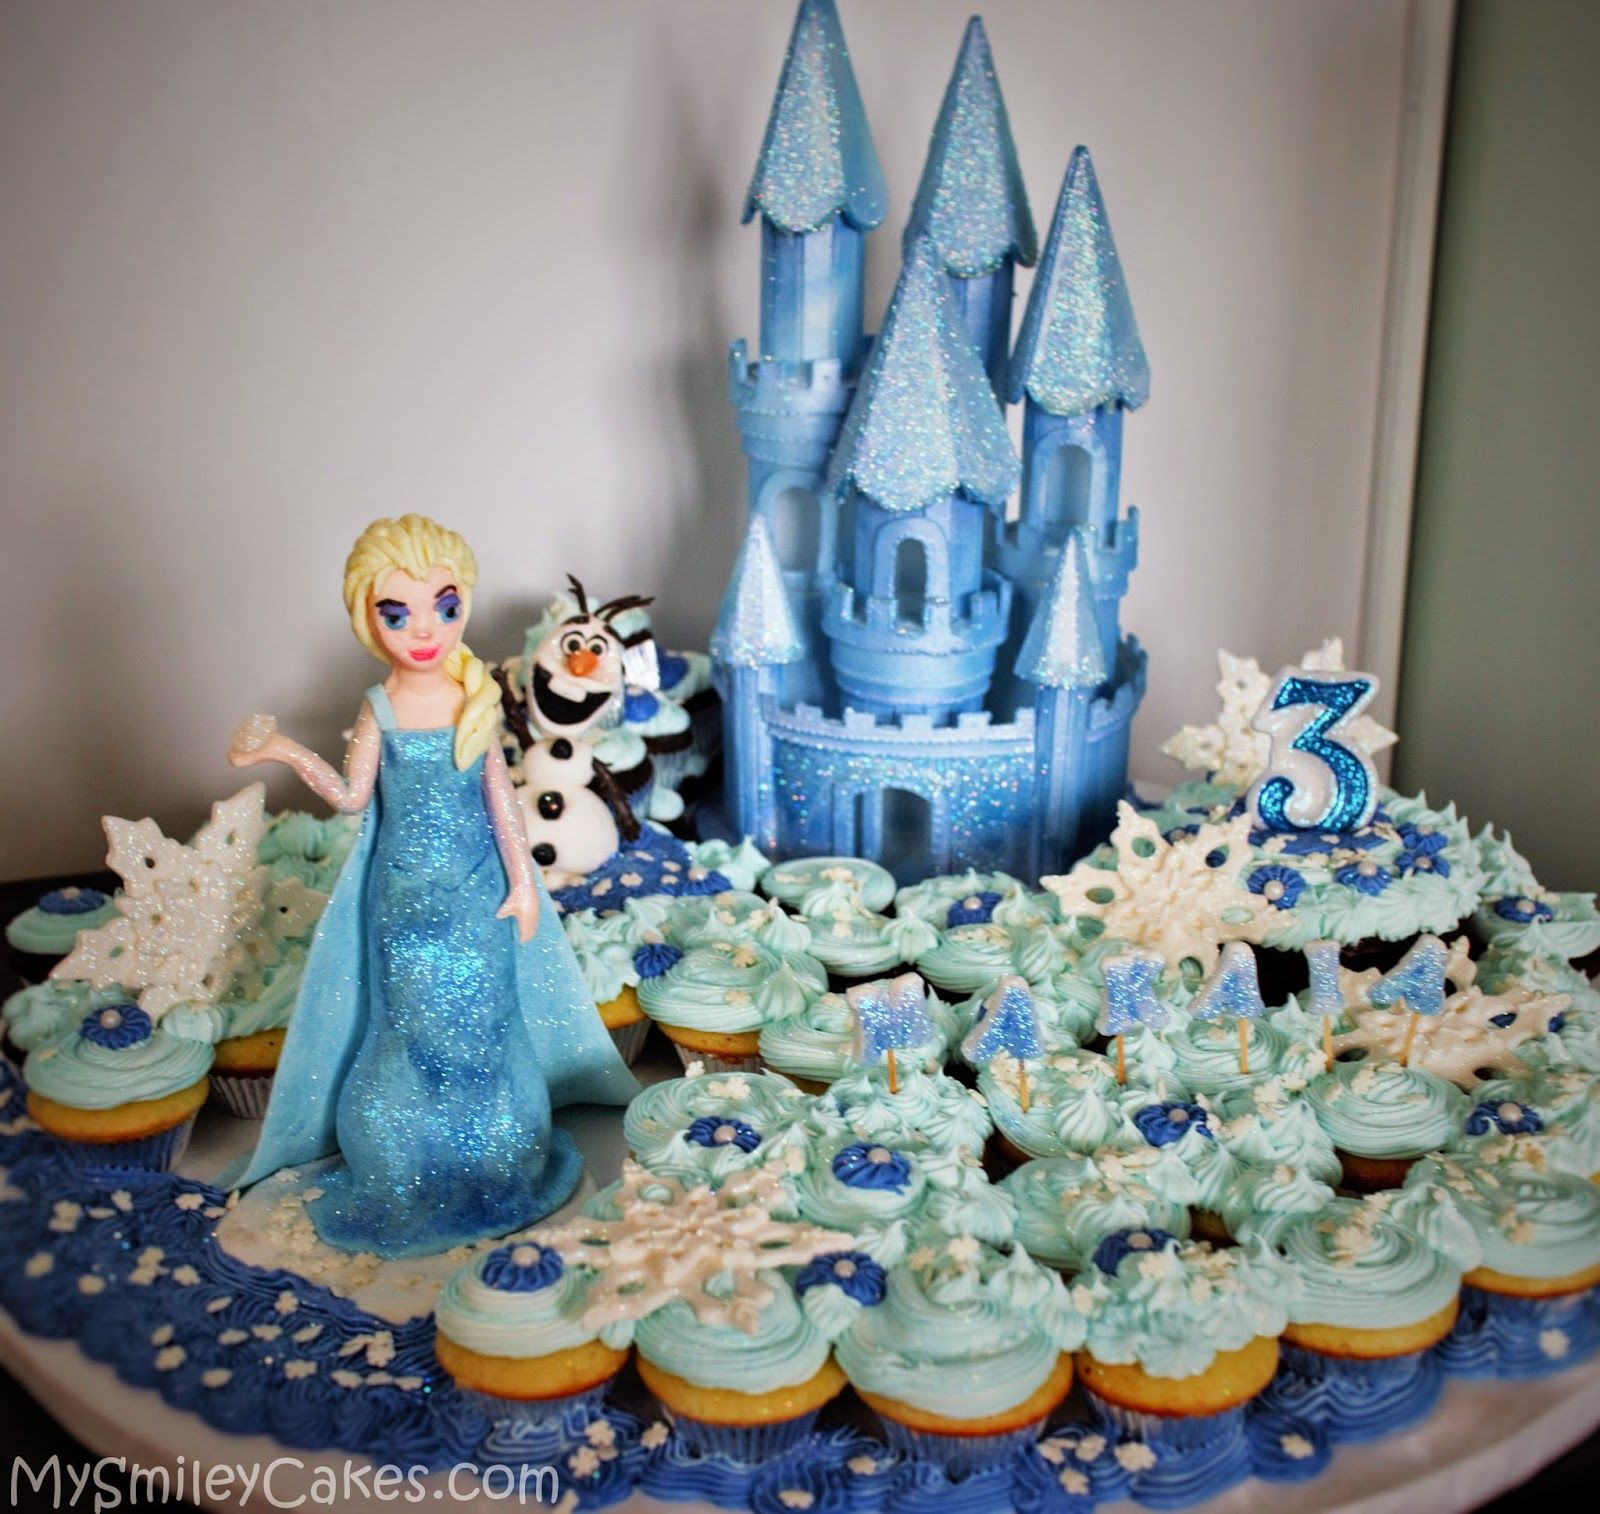 Cake Boss Cupcake Decorating Ideas : Cake Boss Frozen Cakes Disney Frozen Themed Cupcake Cake ...